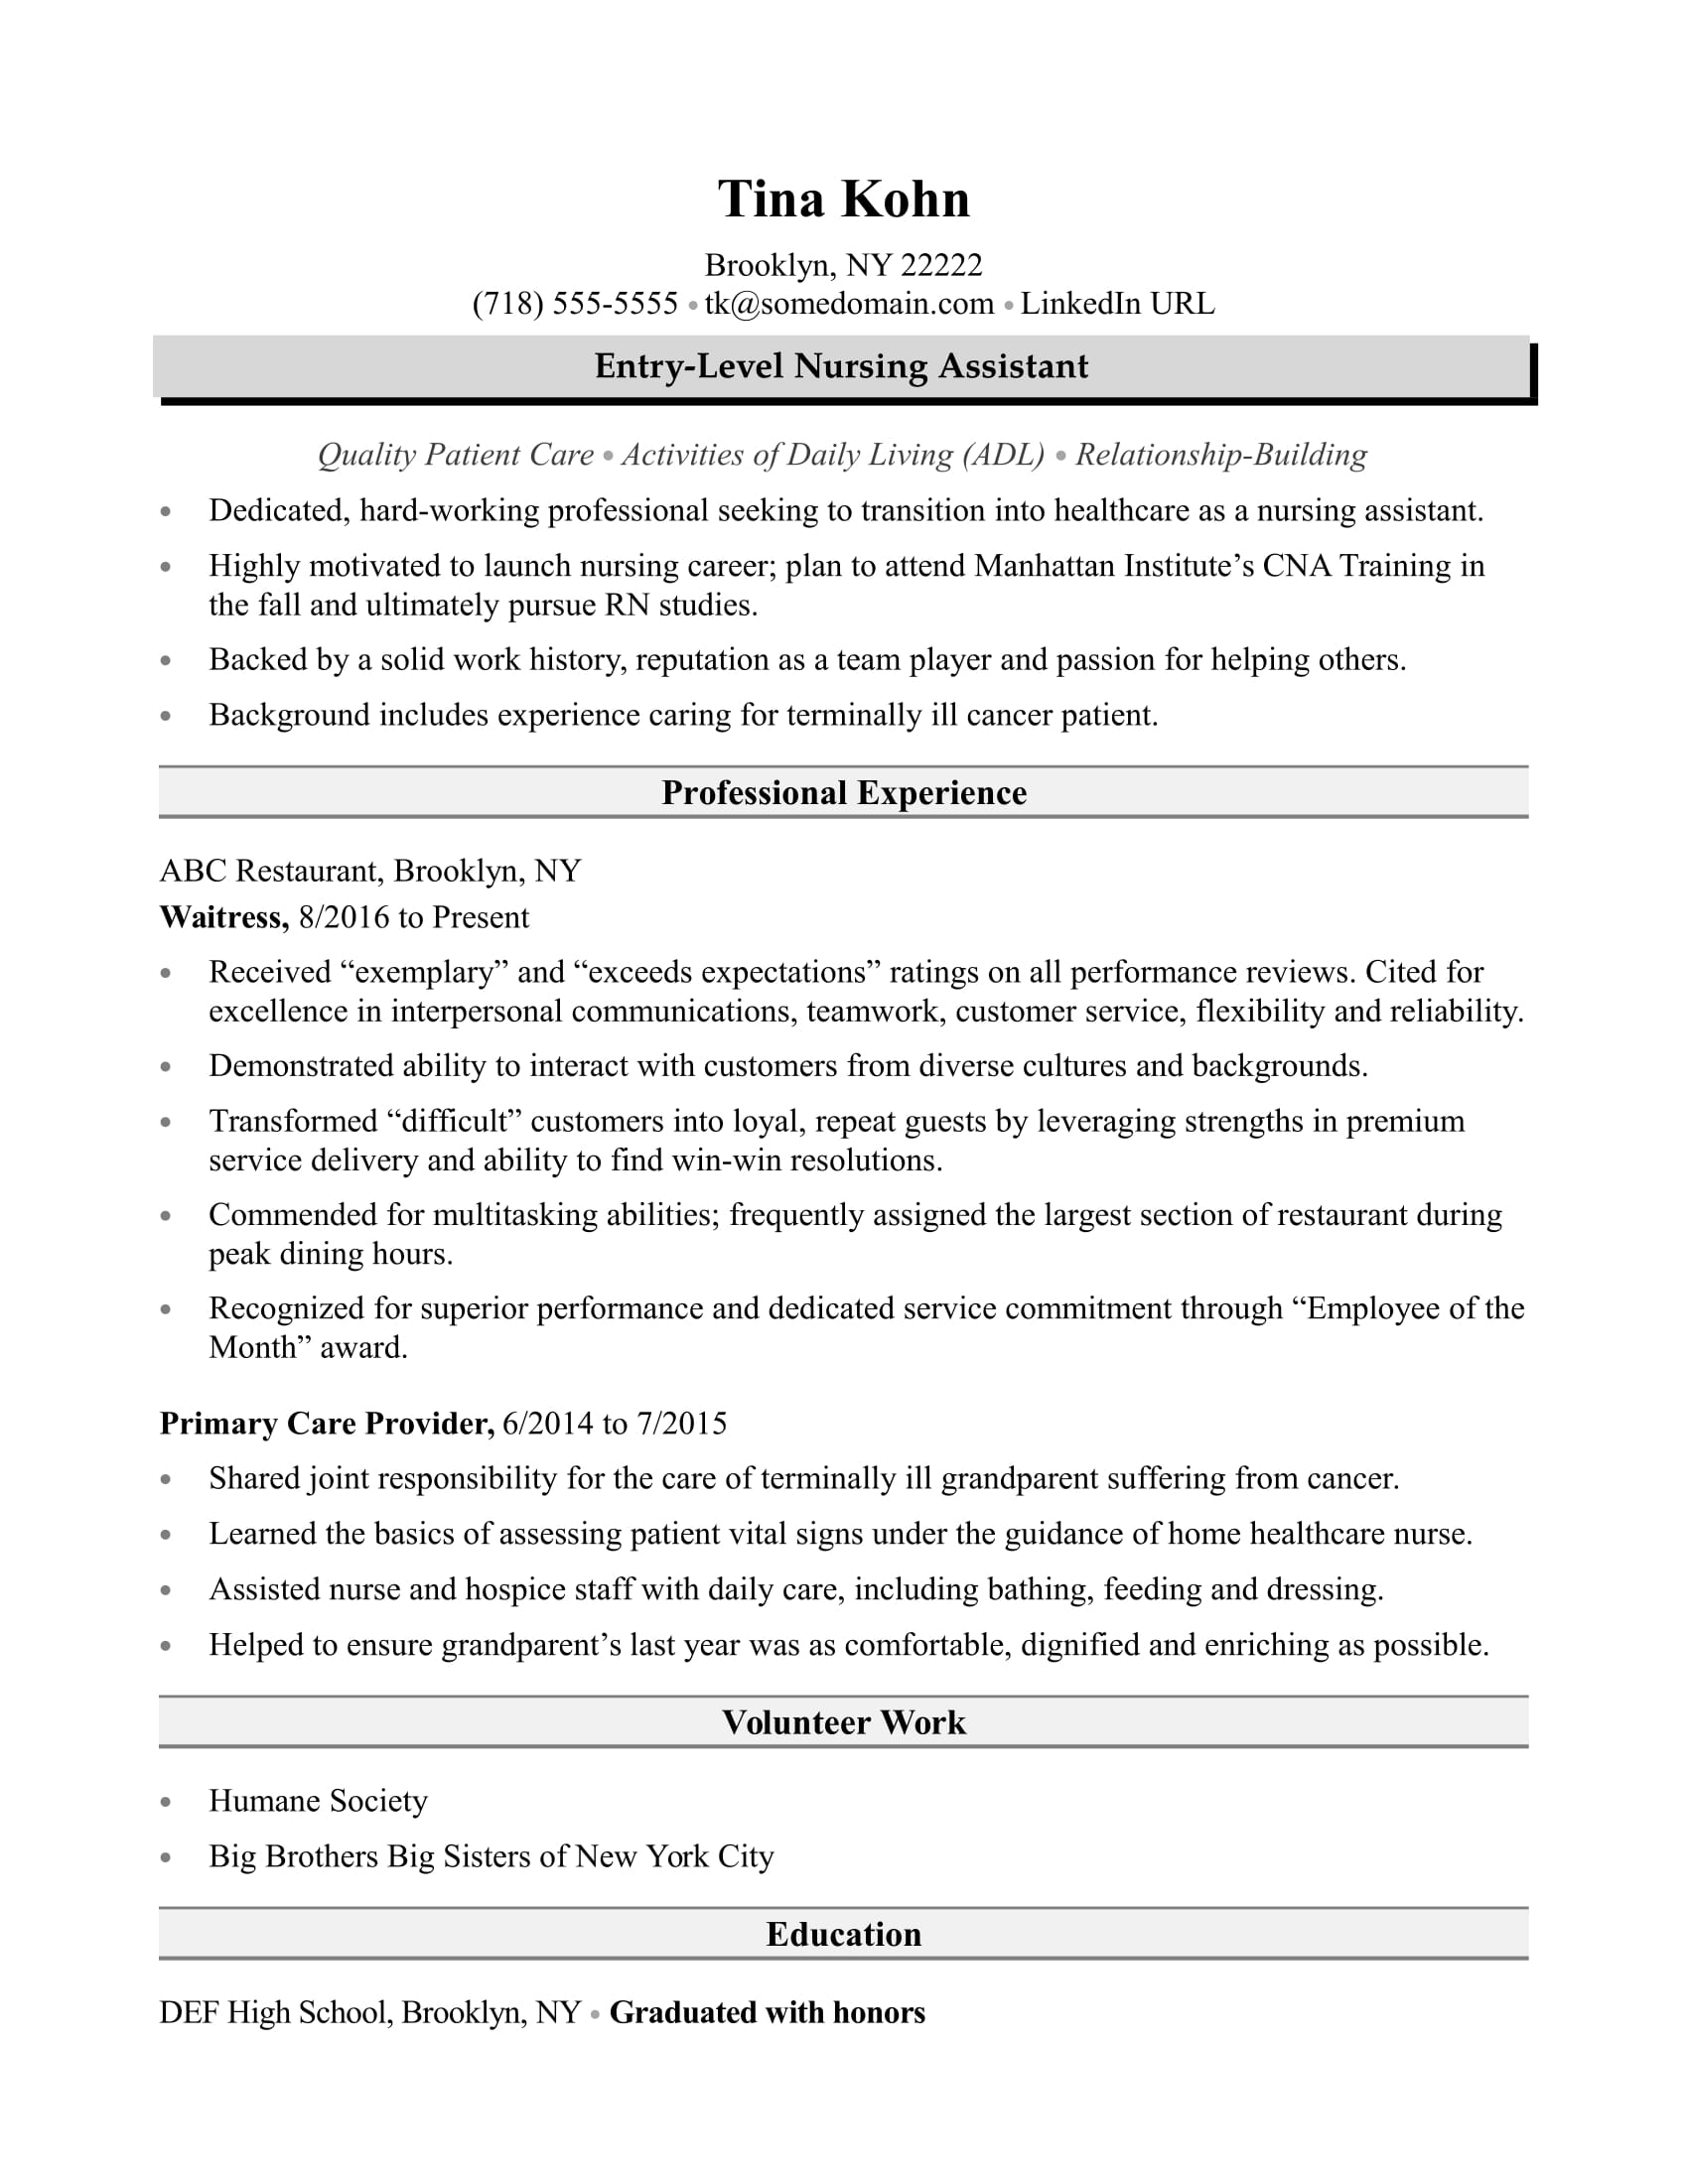 Nursing Assistant Resume Sample  Certified Nurse Assistant Resume